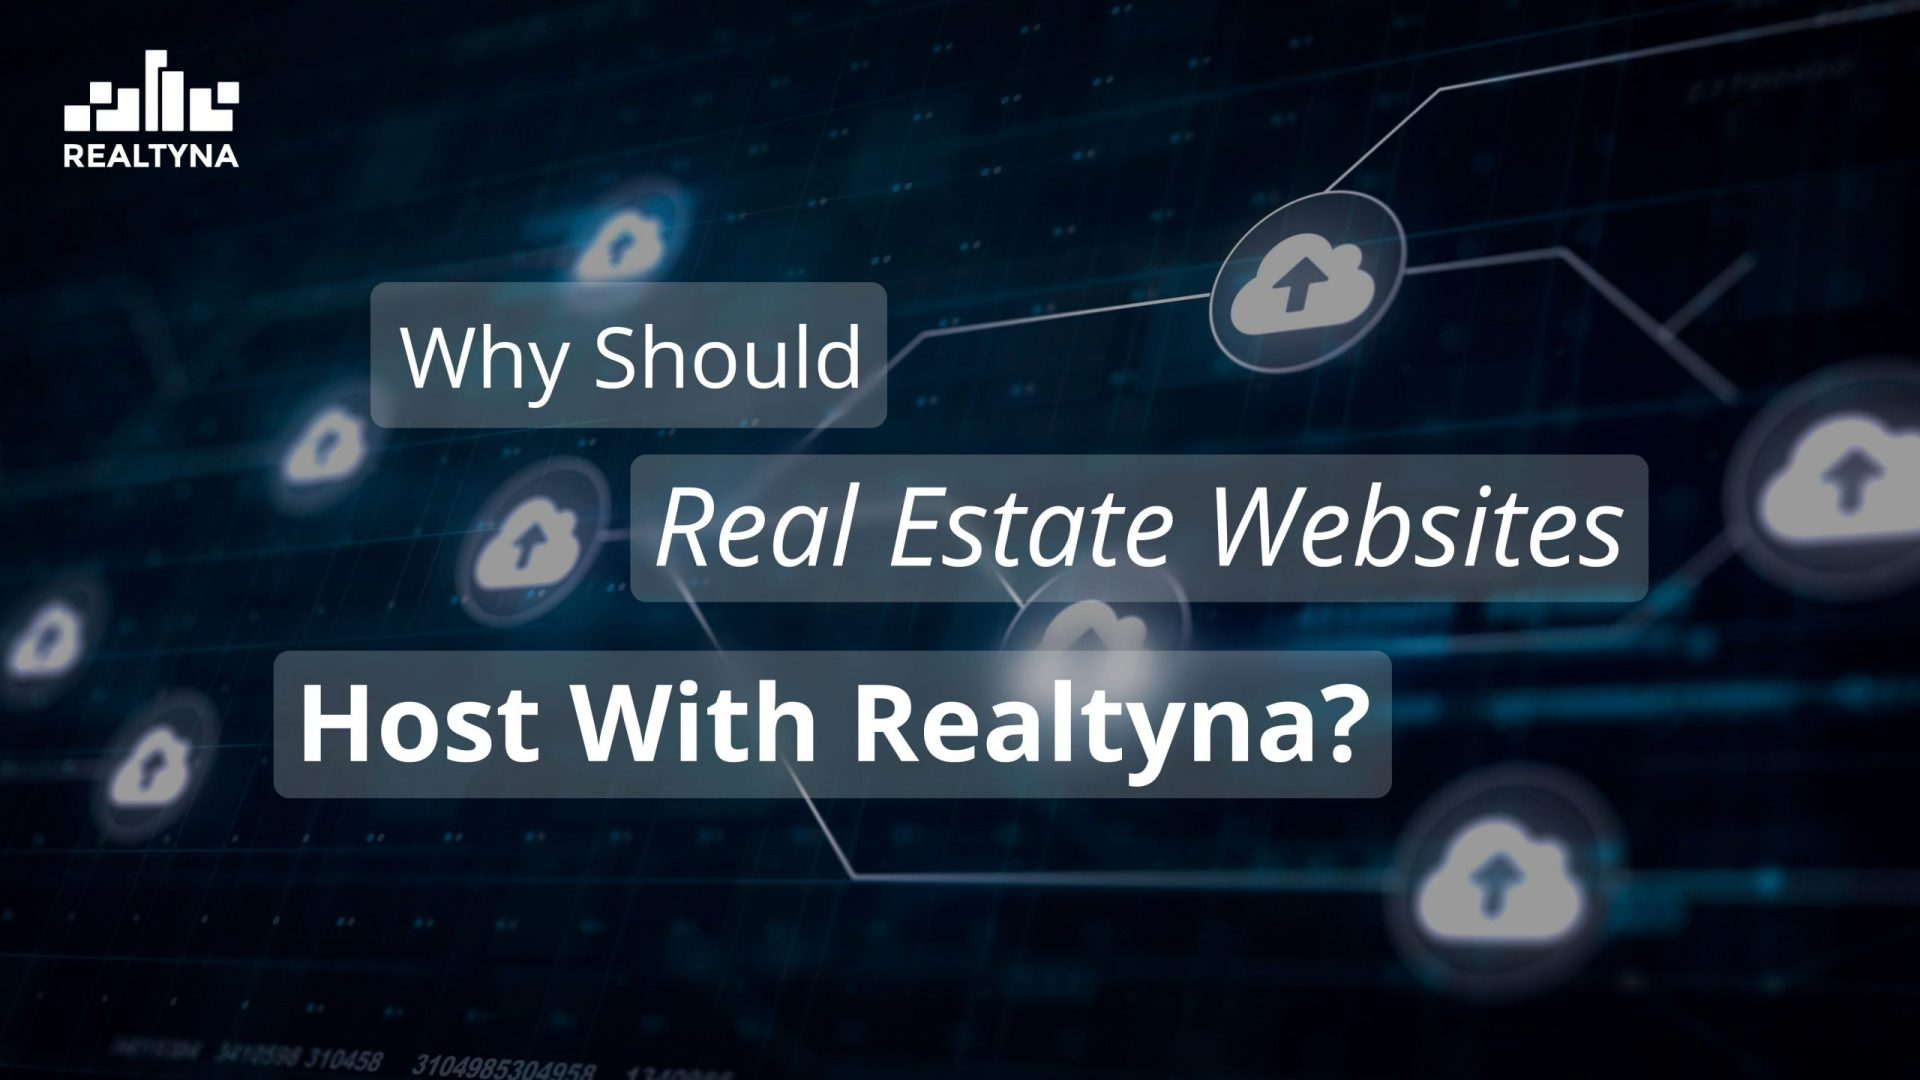 Why Should Real Estate Websites Host with Realtyna?